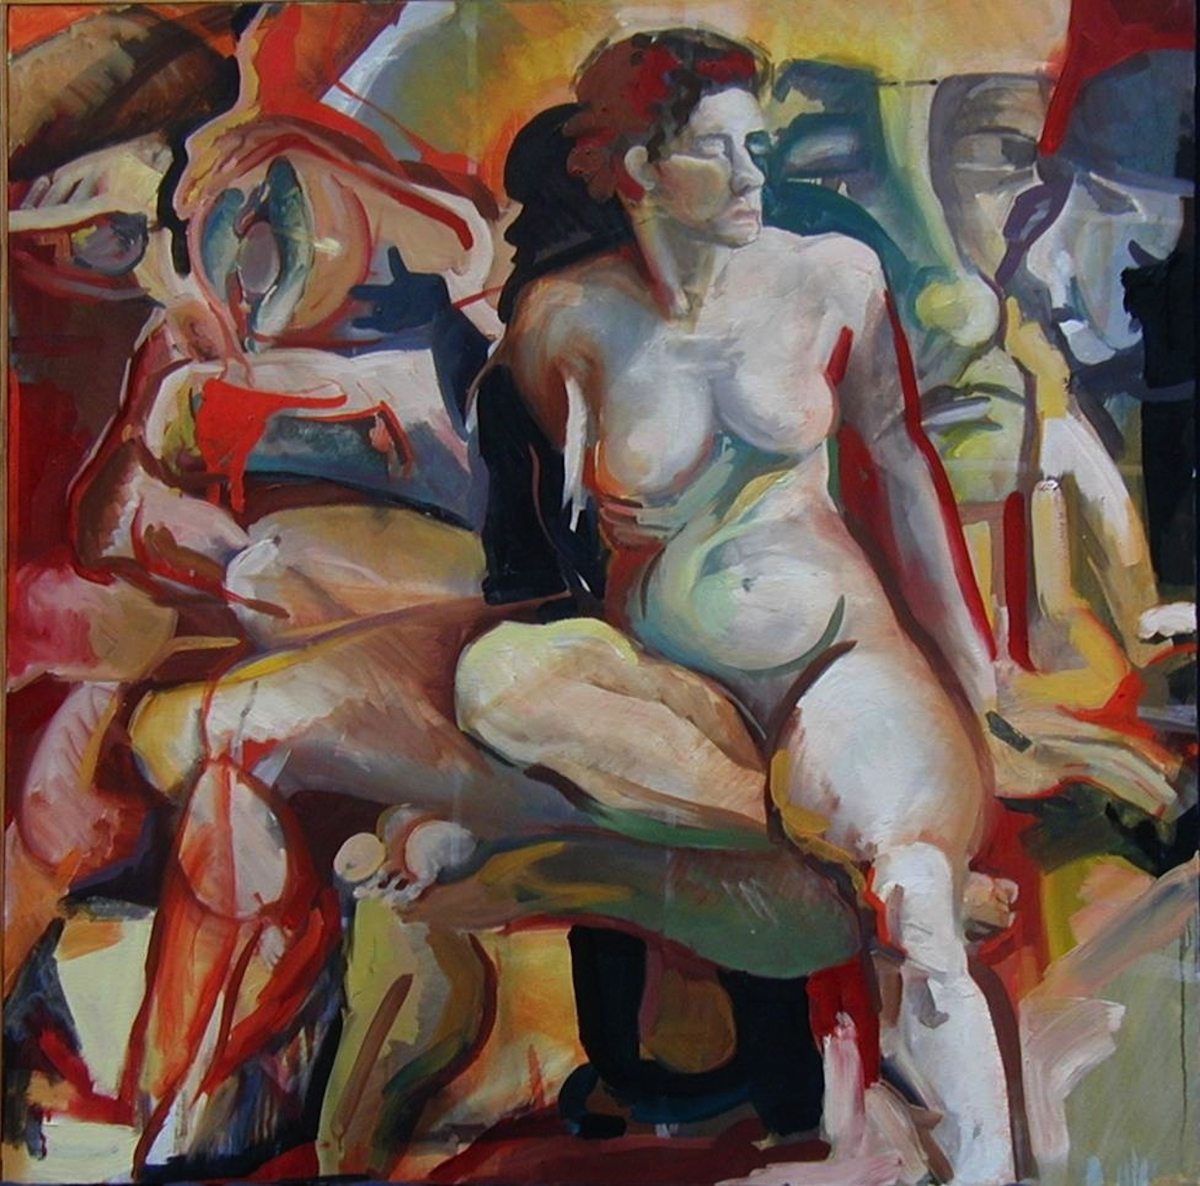 Exploration of a Figure by Linda Streicher (large view)